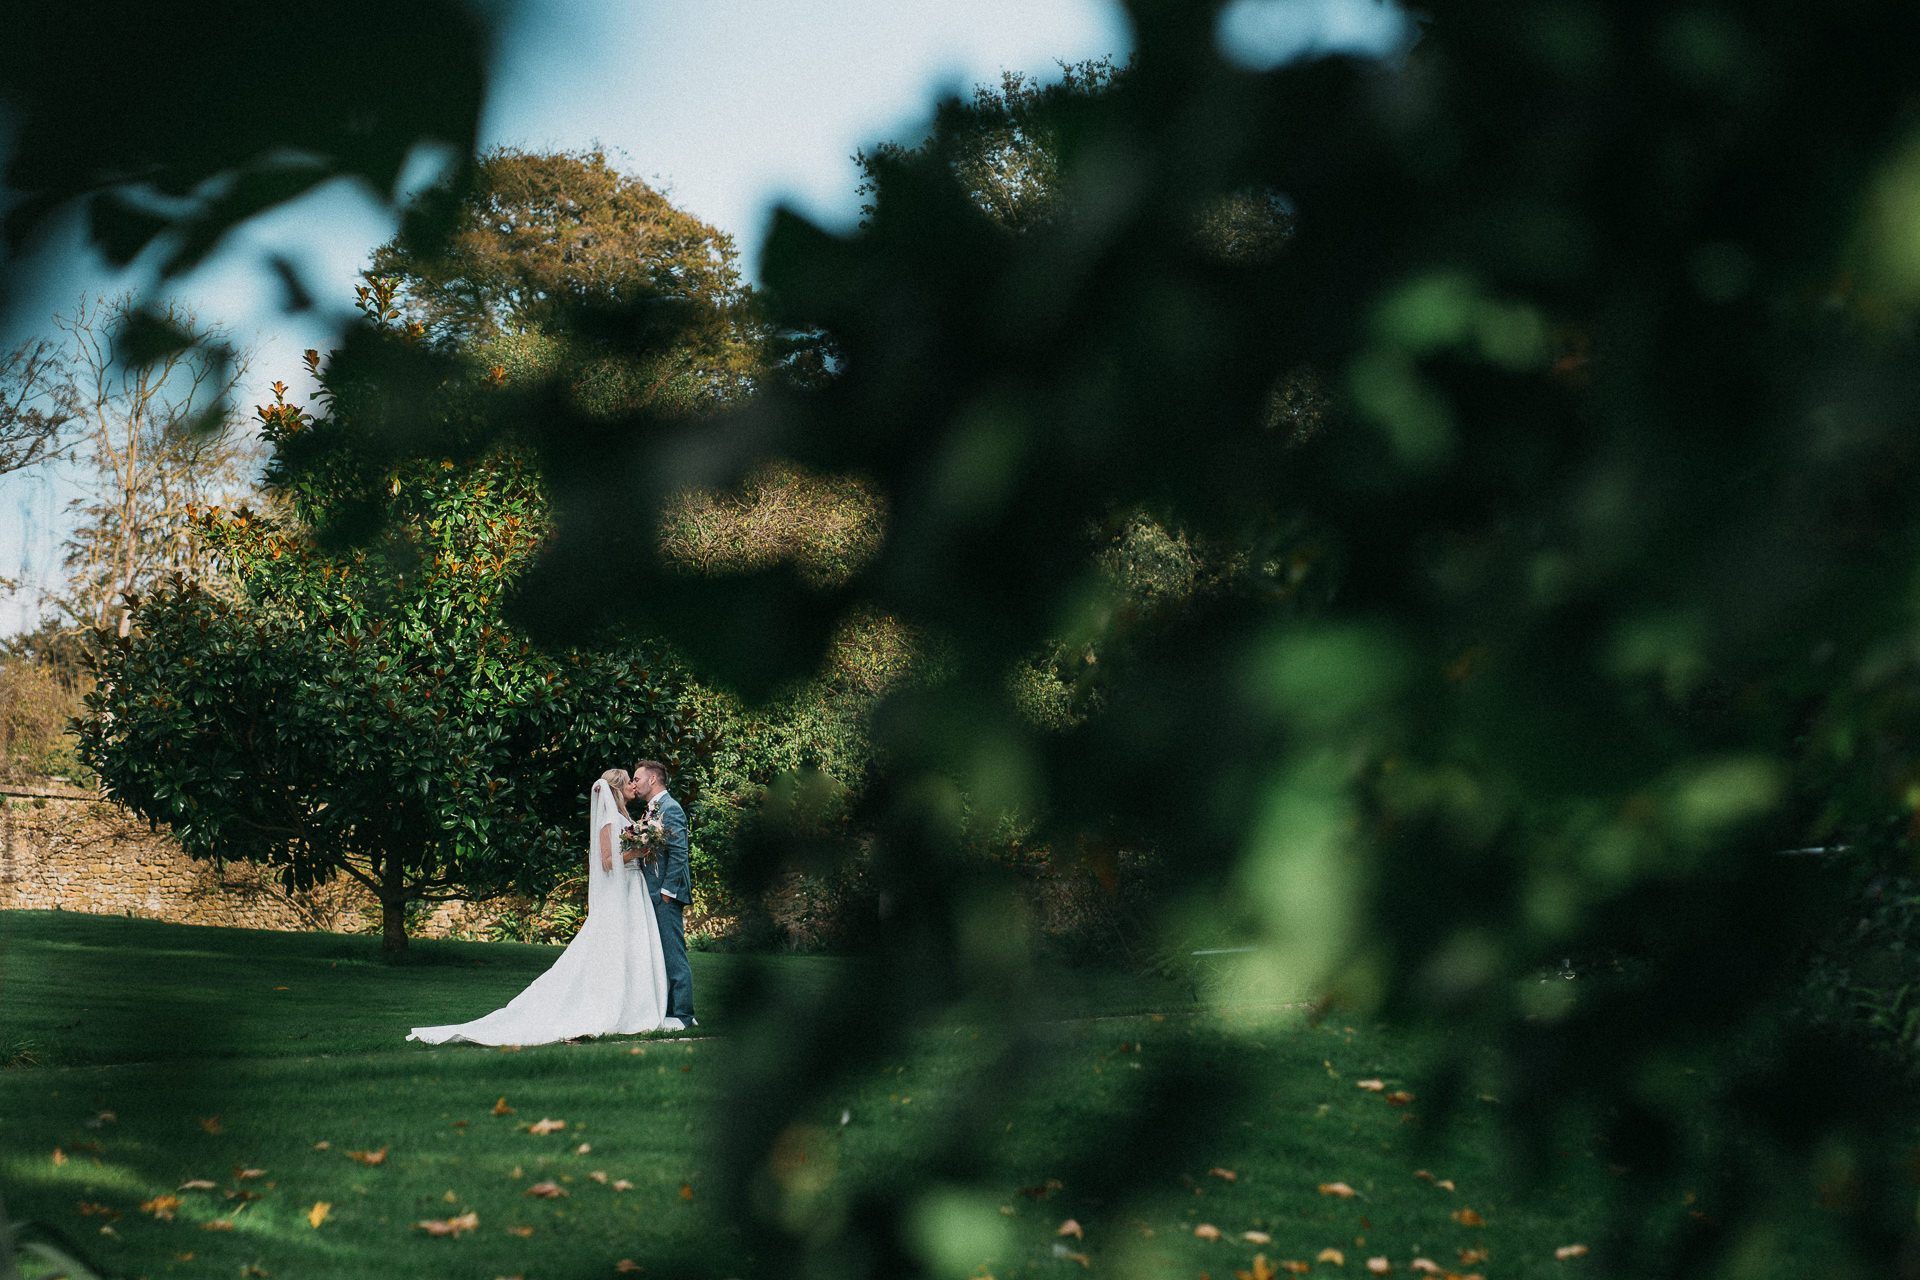 0124-DEVON-SOMERSET-WEDDING-PHOTOGRAPHER-0647-BEST-OF-2019-LOUISE-MAY-DEVON-SOMERSET-WEDDING-PHOTOGRAPHY-20191019-15-46-17-LM204896